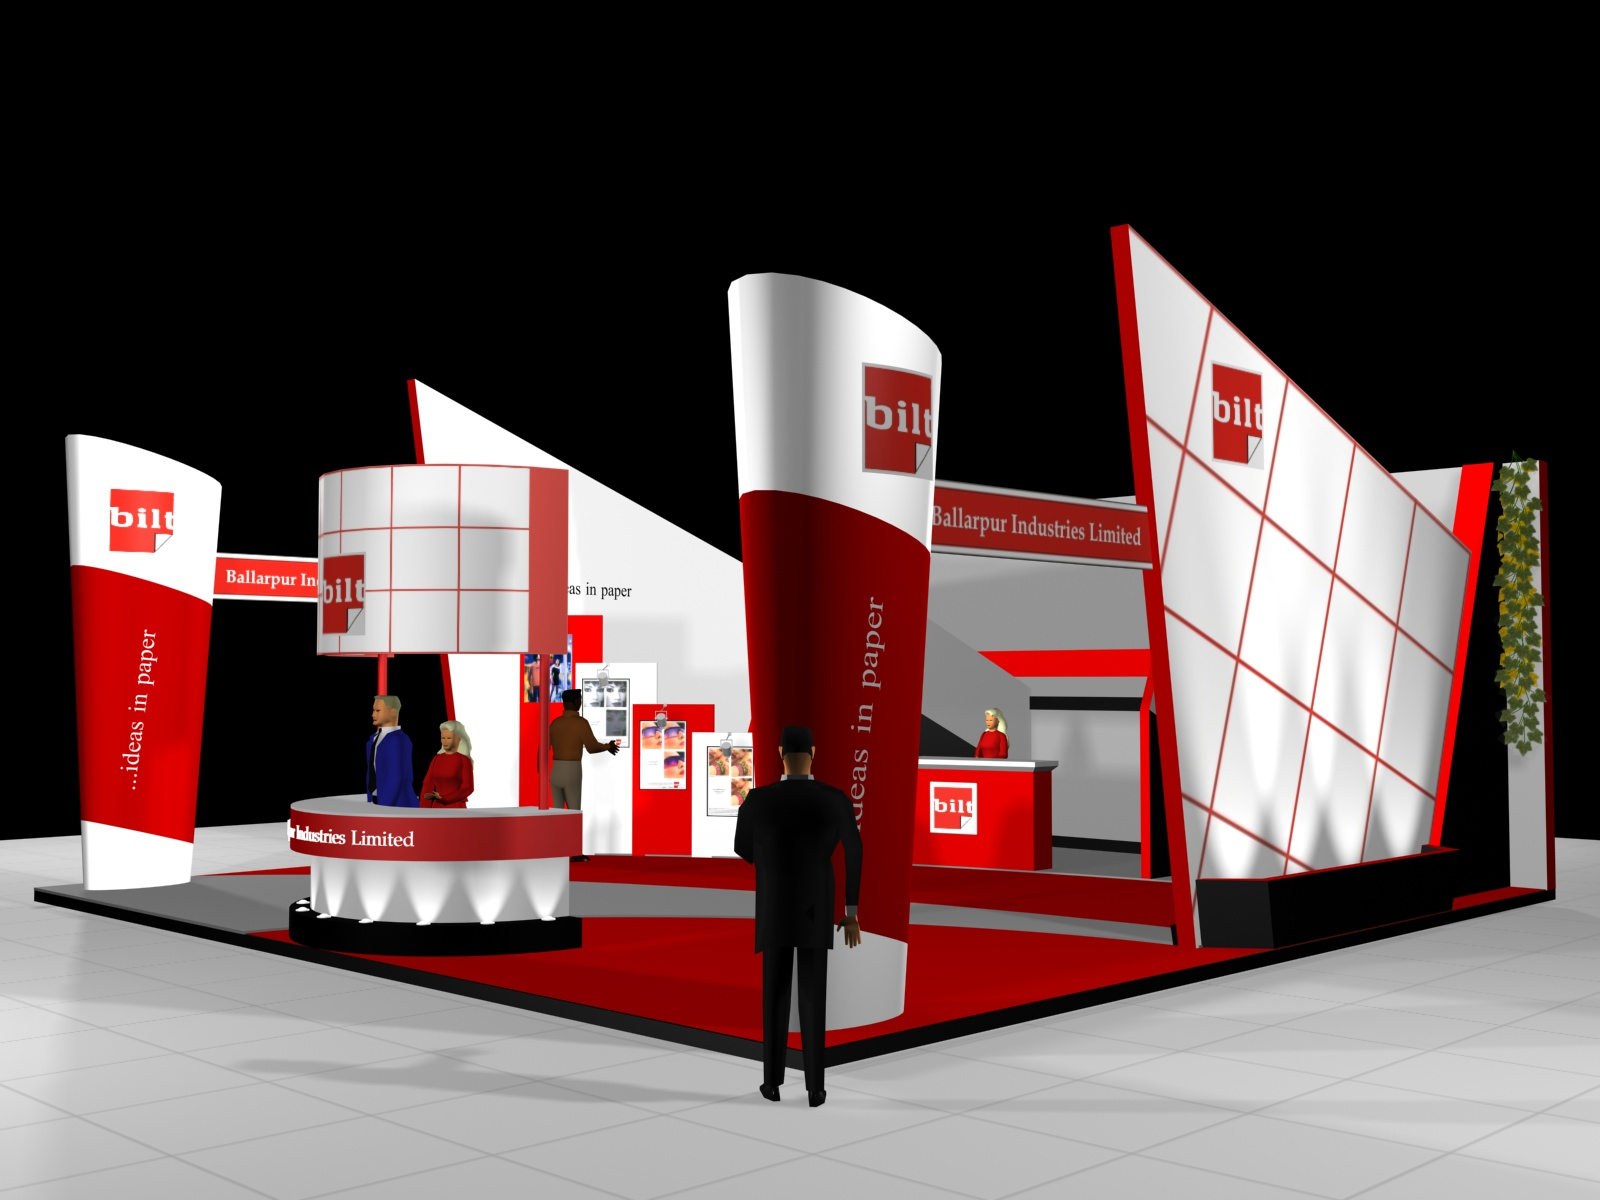 Exhibition Stall Zone : Exhibition design by suneel jain at coroflot